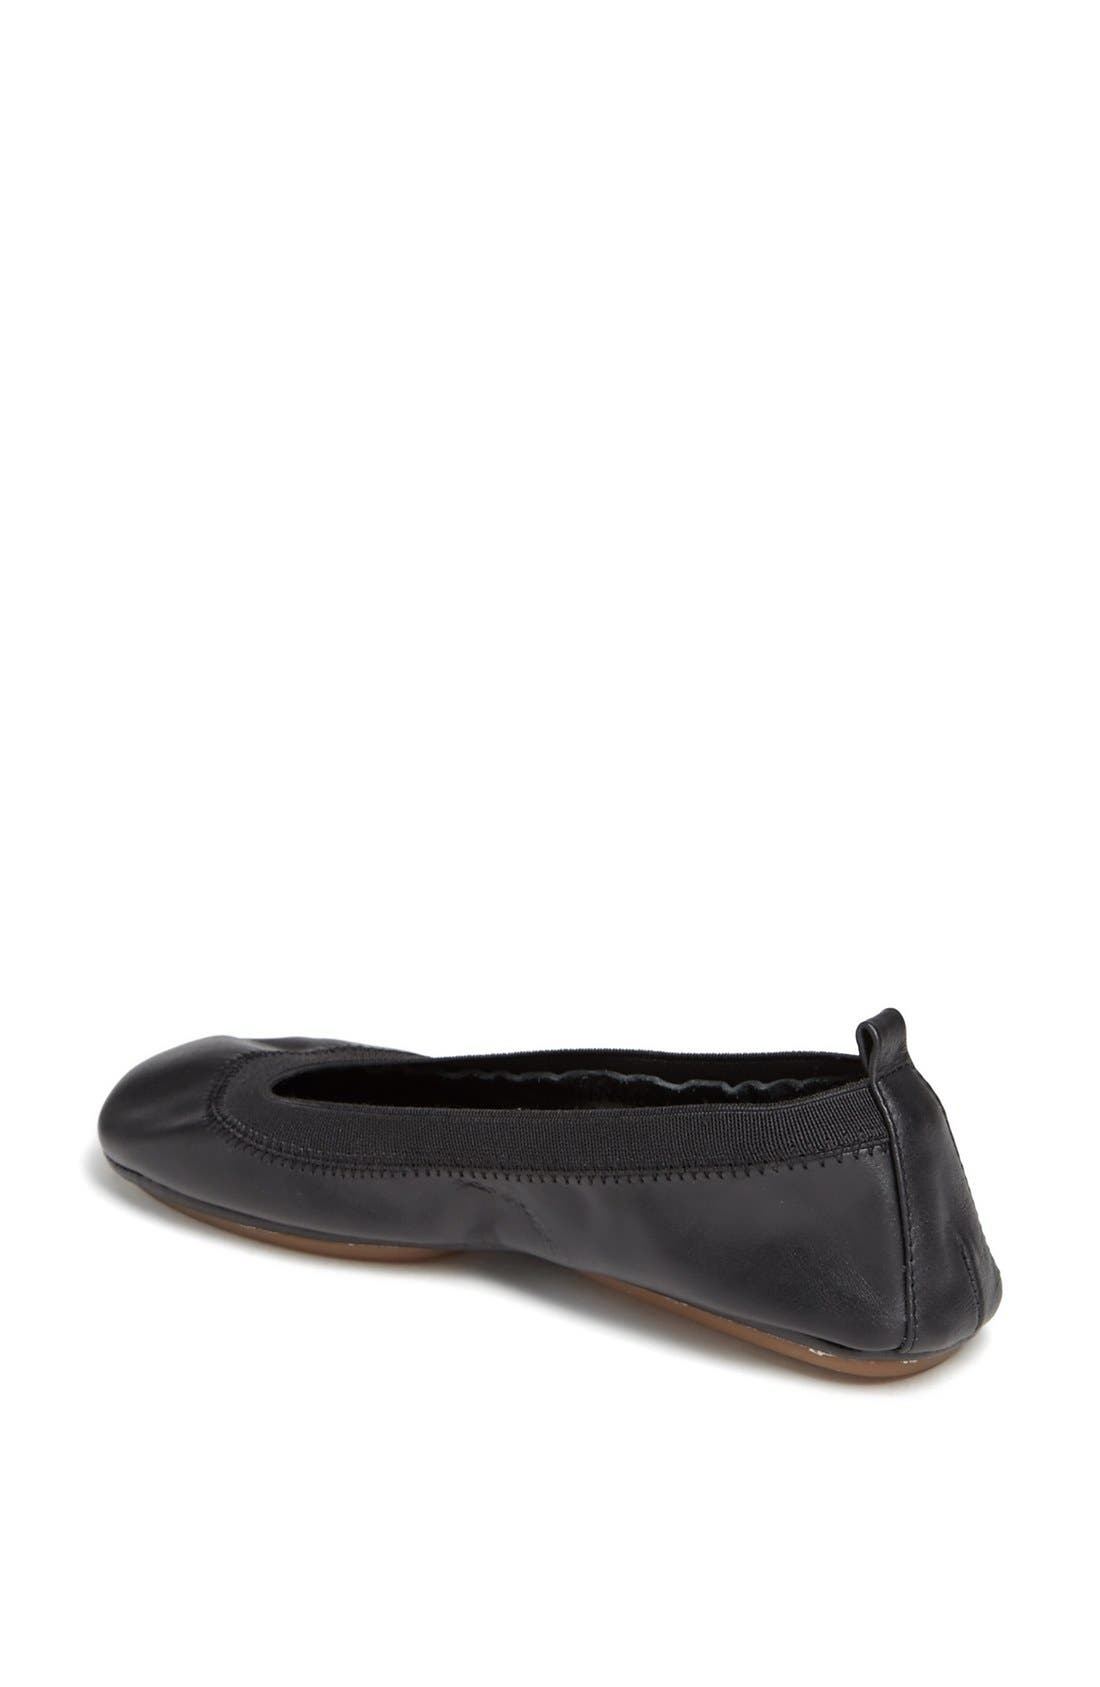 Foldable Ballet Flat,                             Alternate thumbnail 3, color,                             001